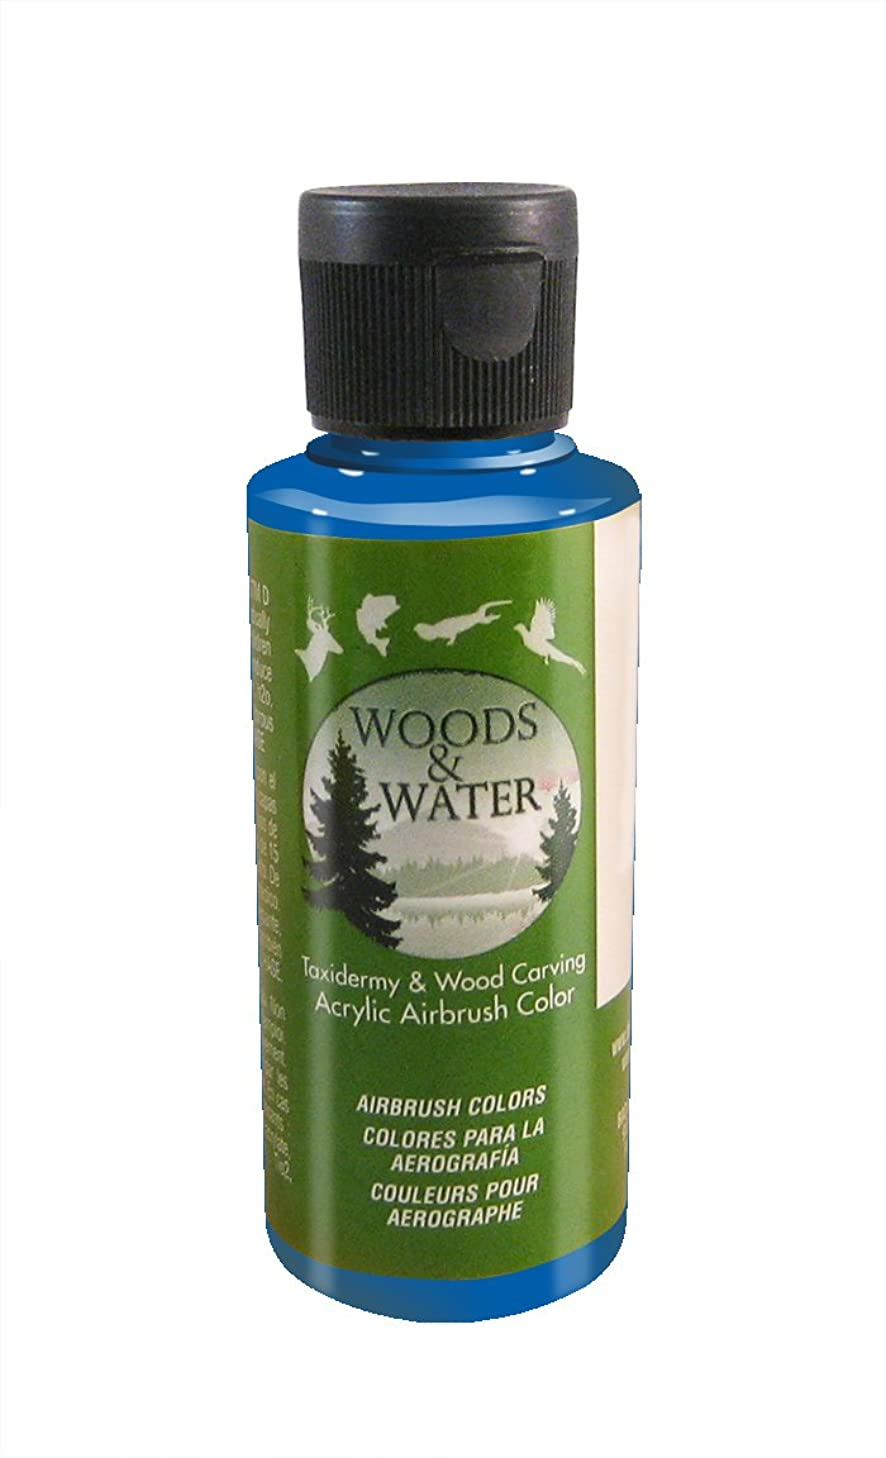 Badger Air-Brush Co. 4-Ounce Woods and Water Airbrush Ready Water Based Acrylic Paint, Candy Blue